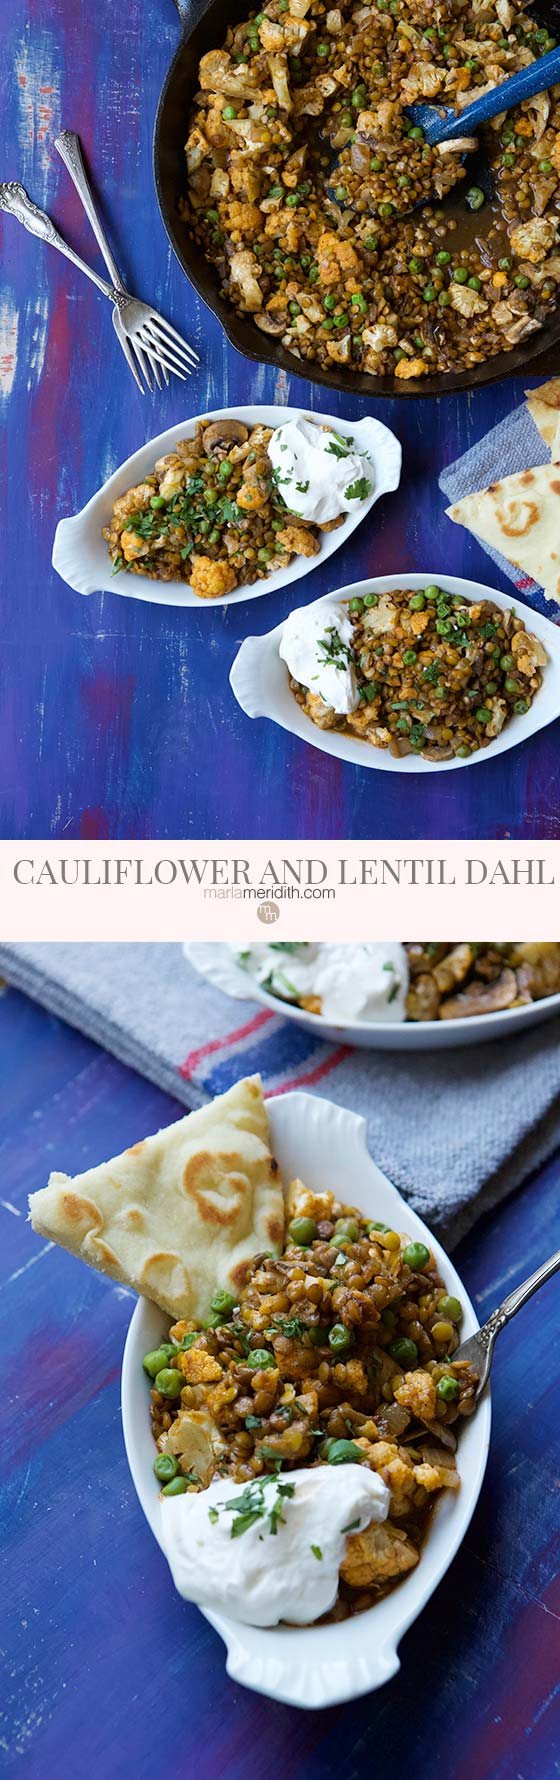 Try this healthy, vegetarian Lentil and Cauliflower Dahl recipe for Meatless Monday. We love this authentic Indian dish for lunch and dinner. MarlaMeridith.com